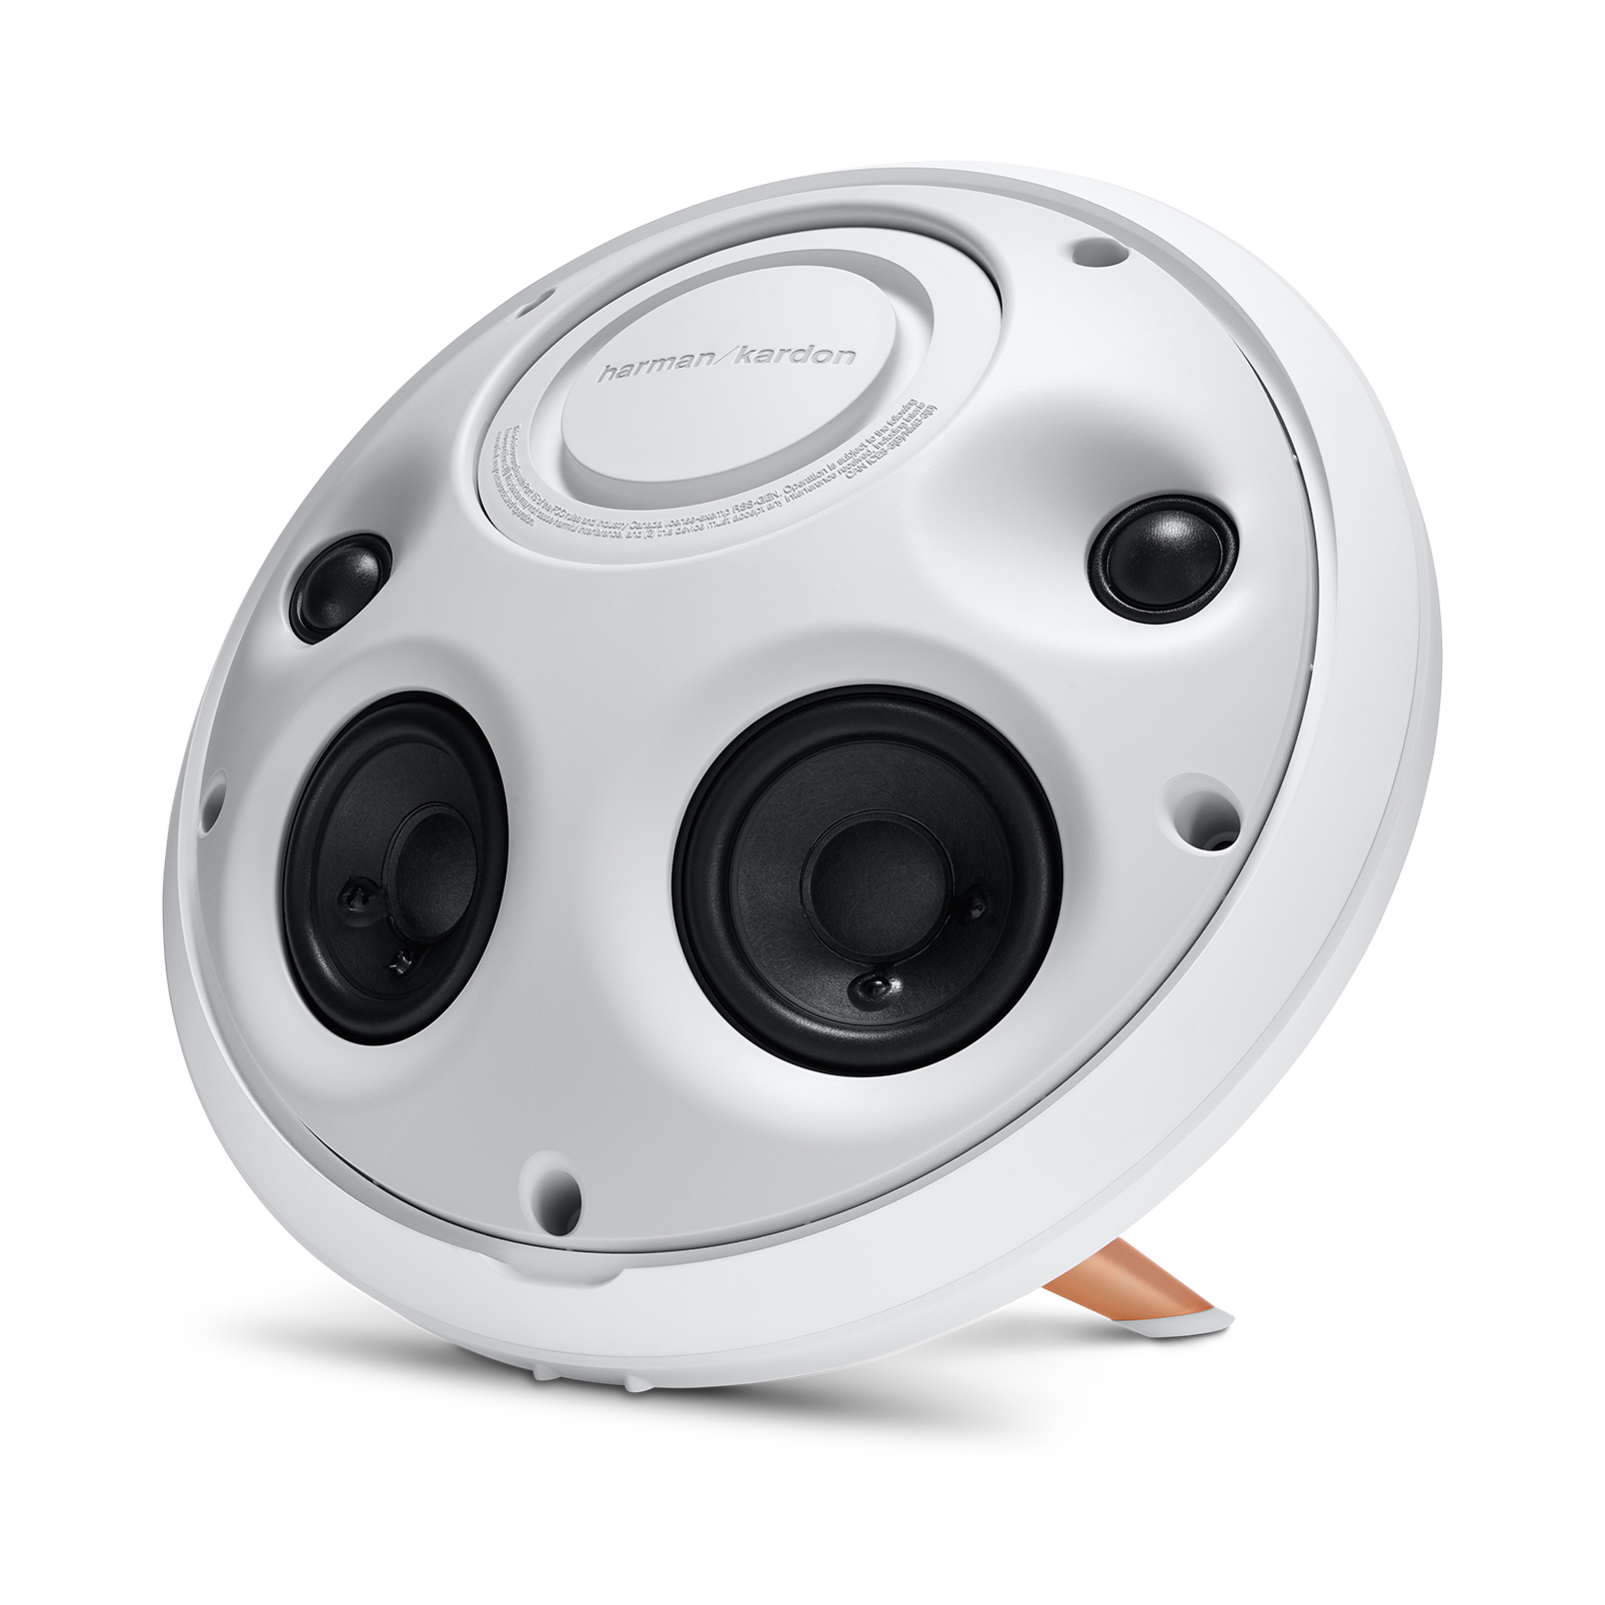 Onyx Studio 2 - White - Wireless Speaker System with rechargeable battery and built-in microphone - Detailshot 3